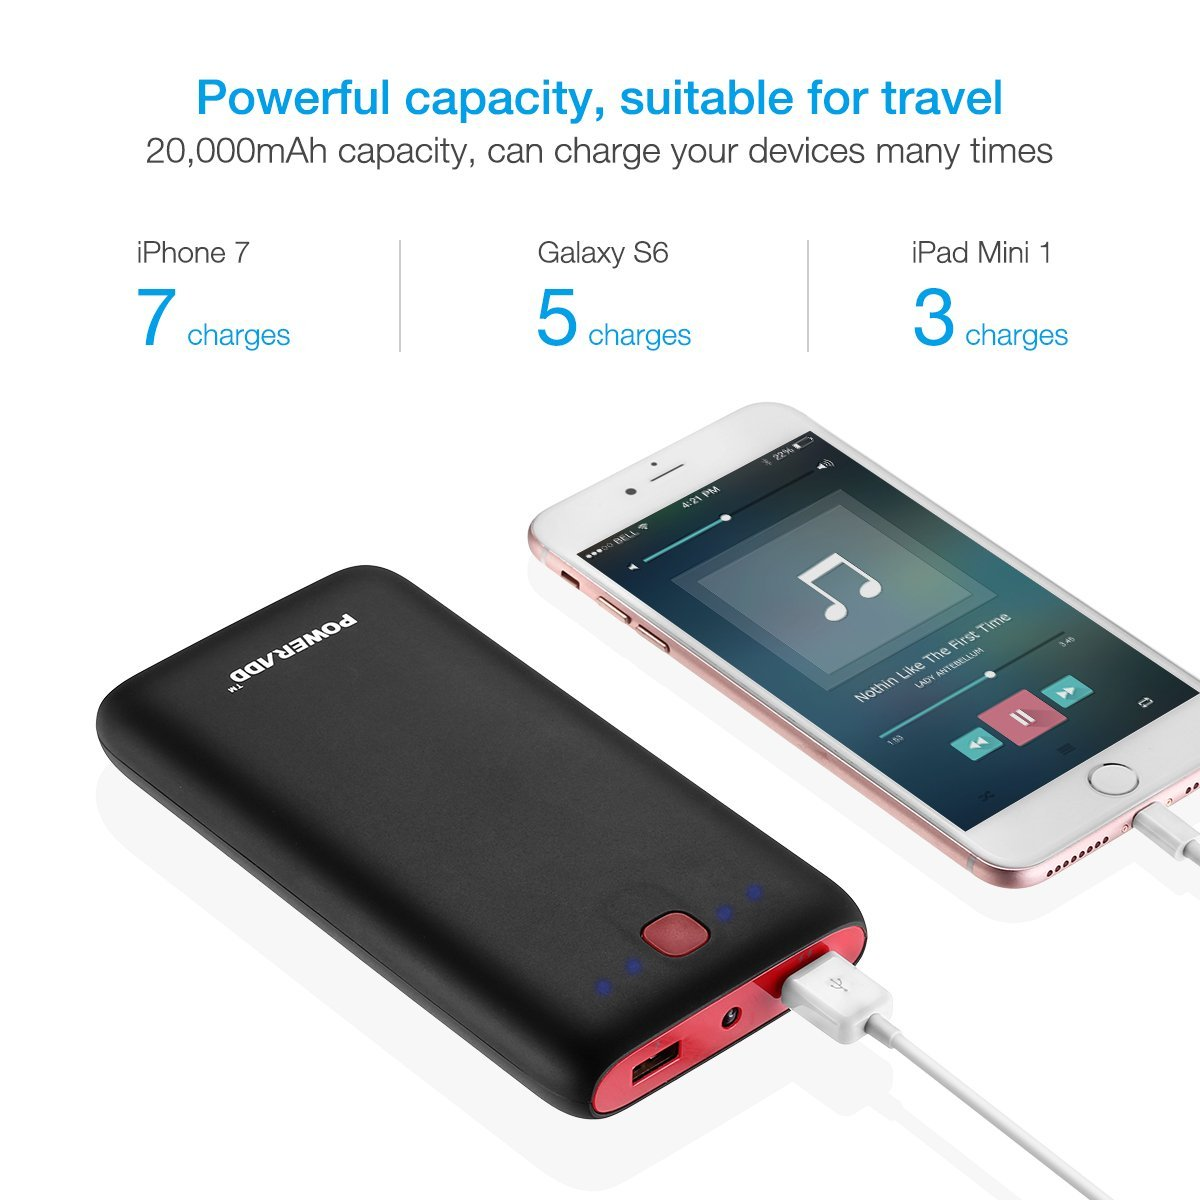 Power pack charging mobile phones, camping, festivals, amazon